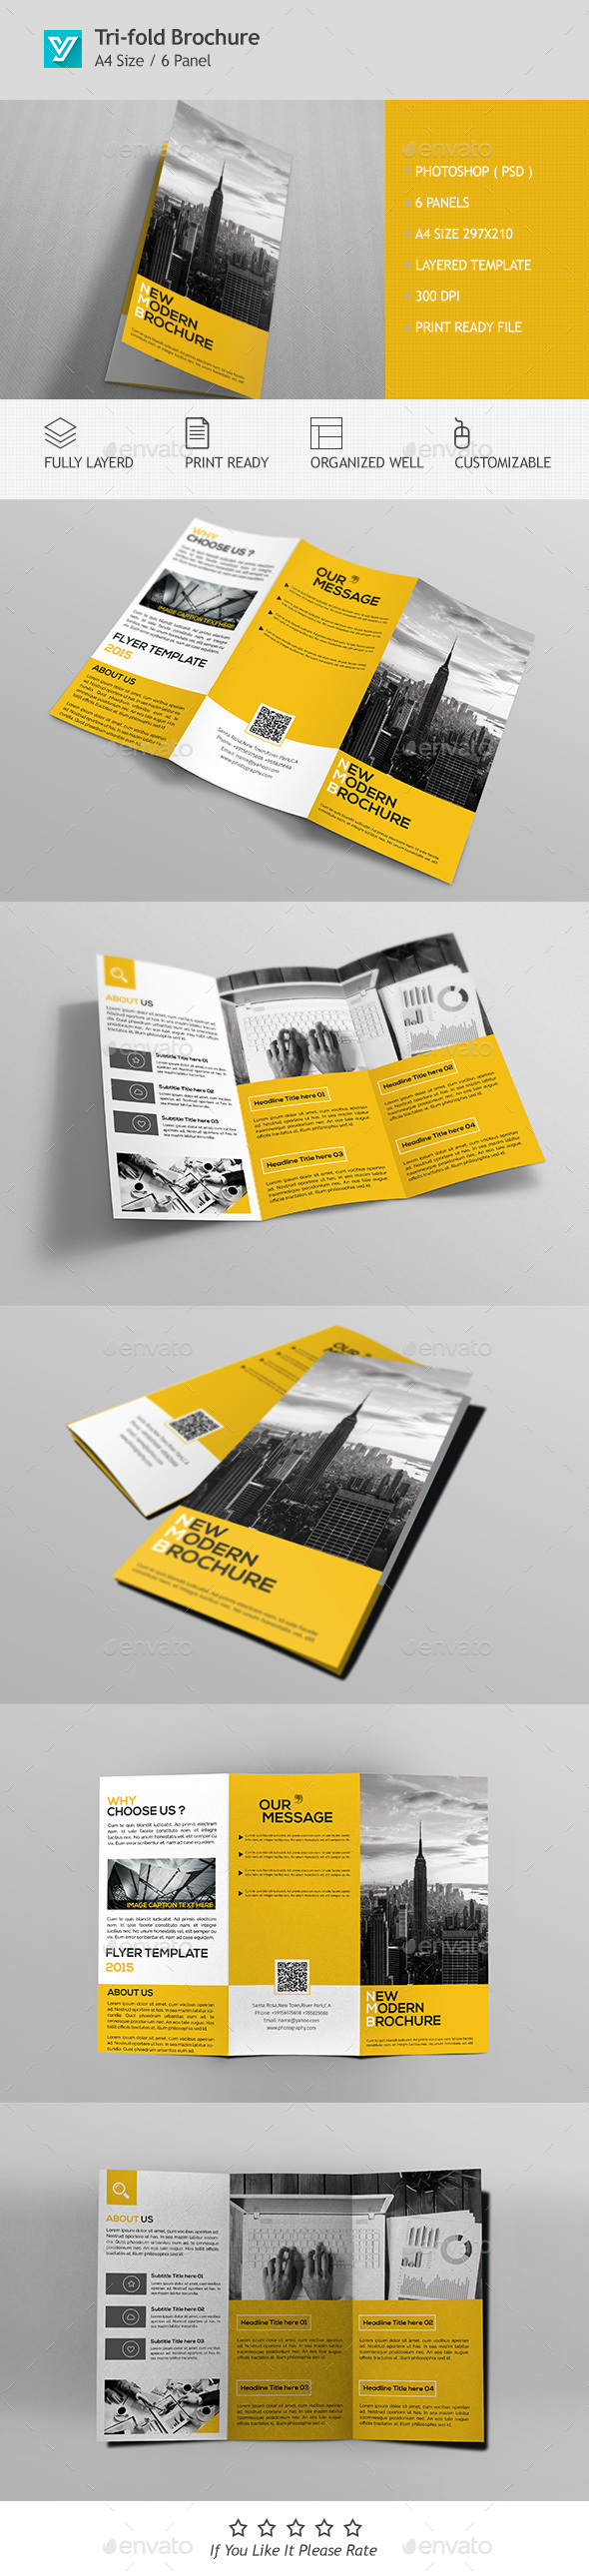 Corporate Trifold Brochure Template PSD Design Download Http - Brochure template for photoshop